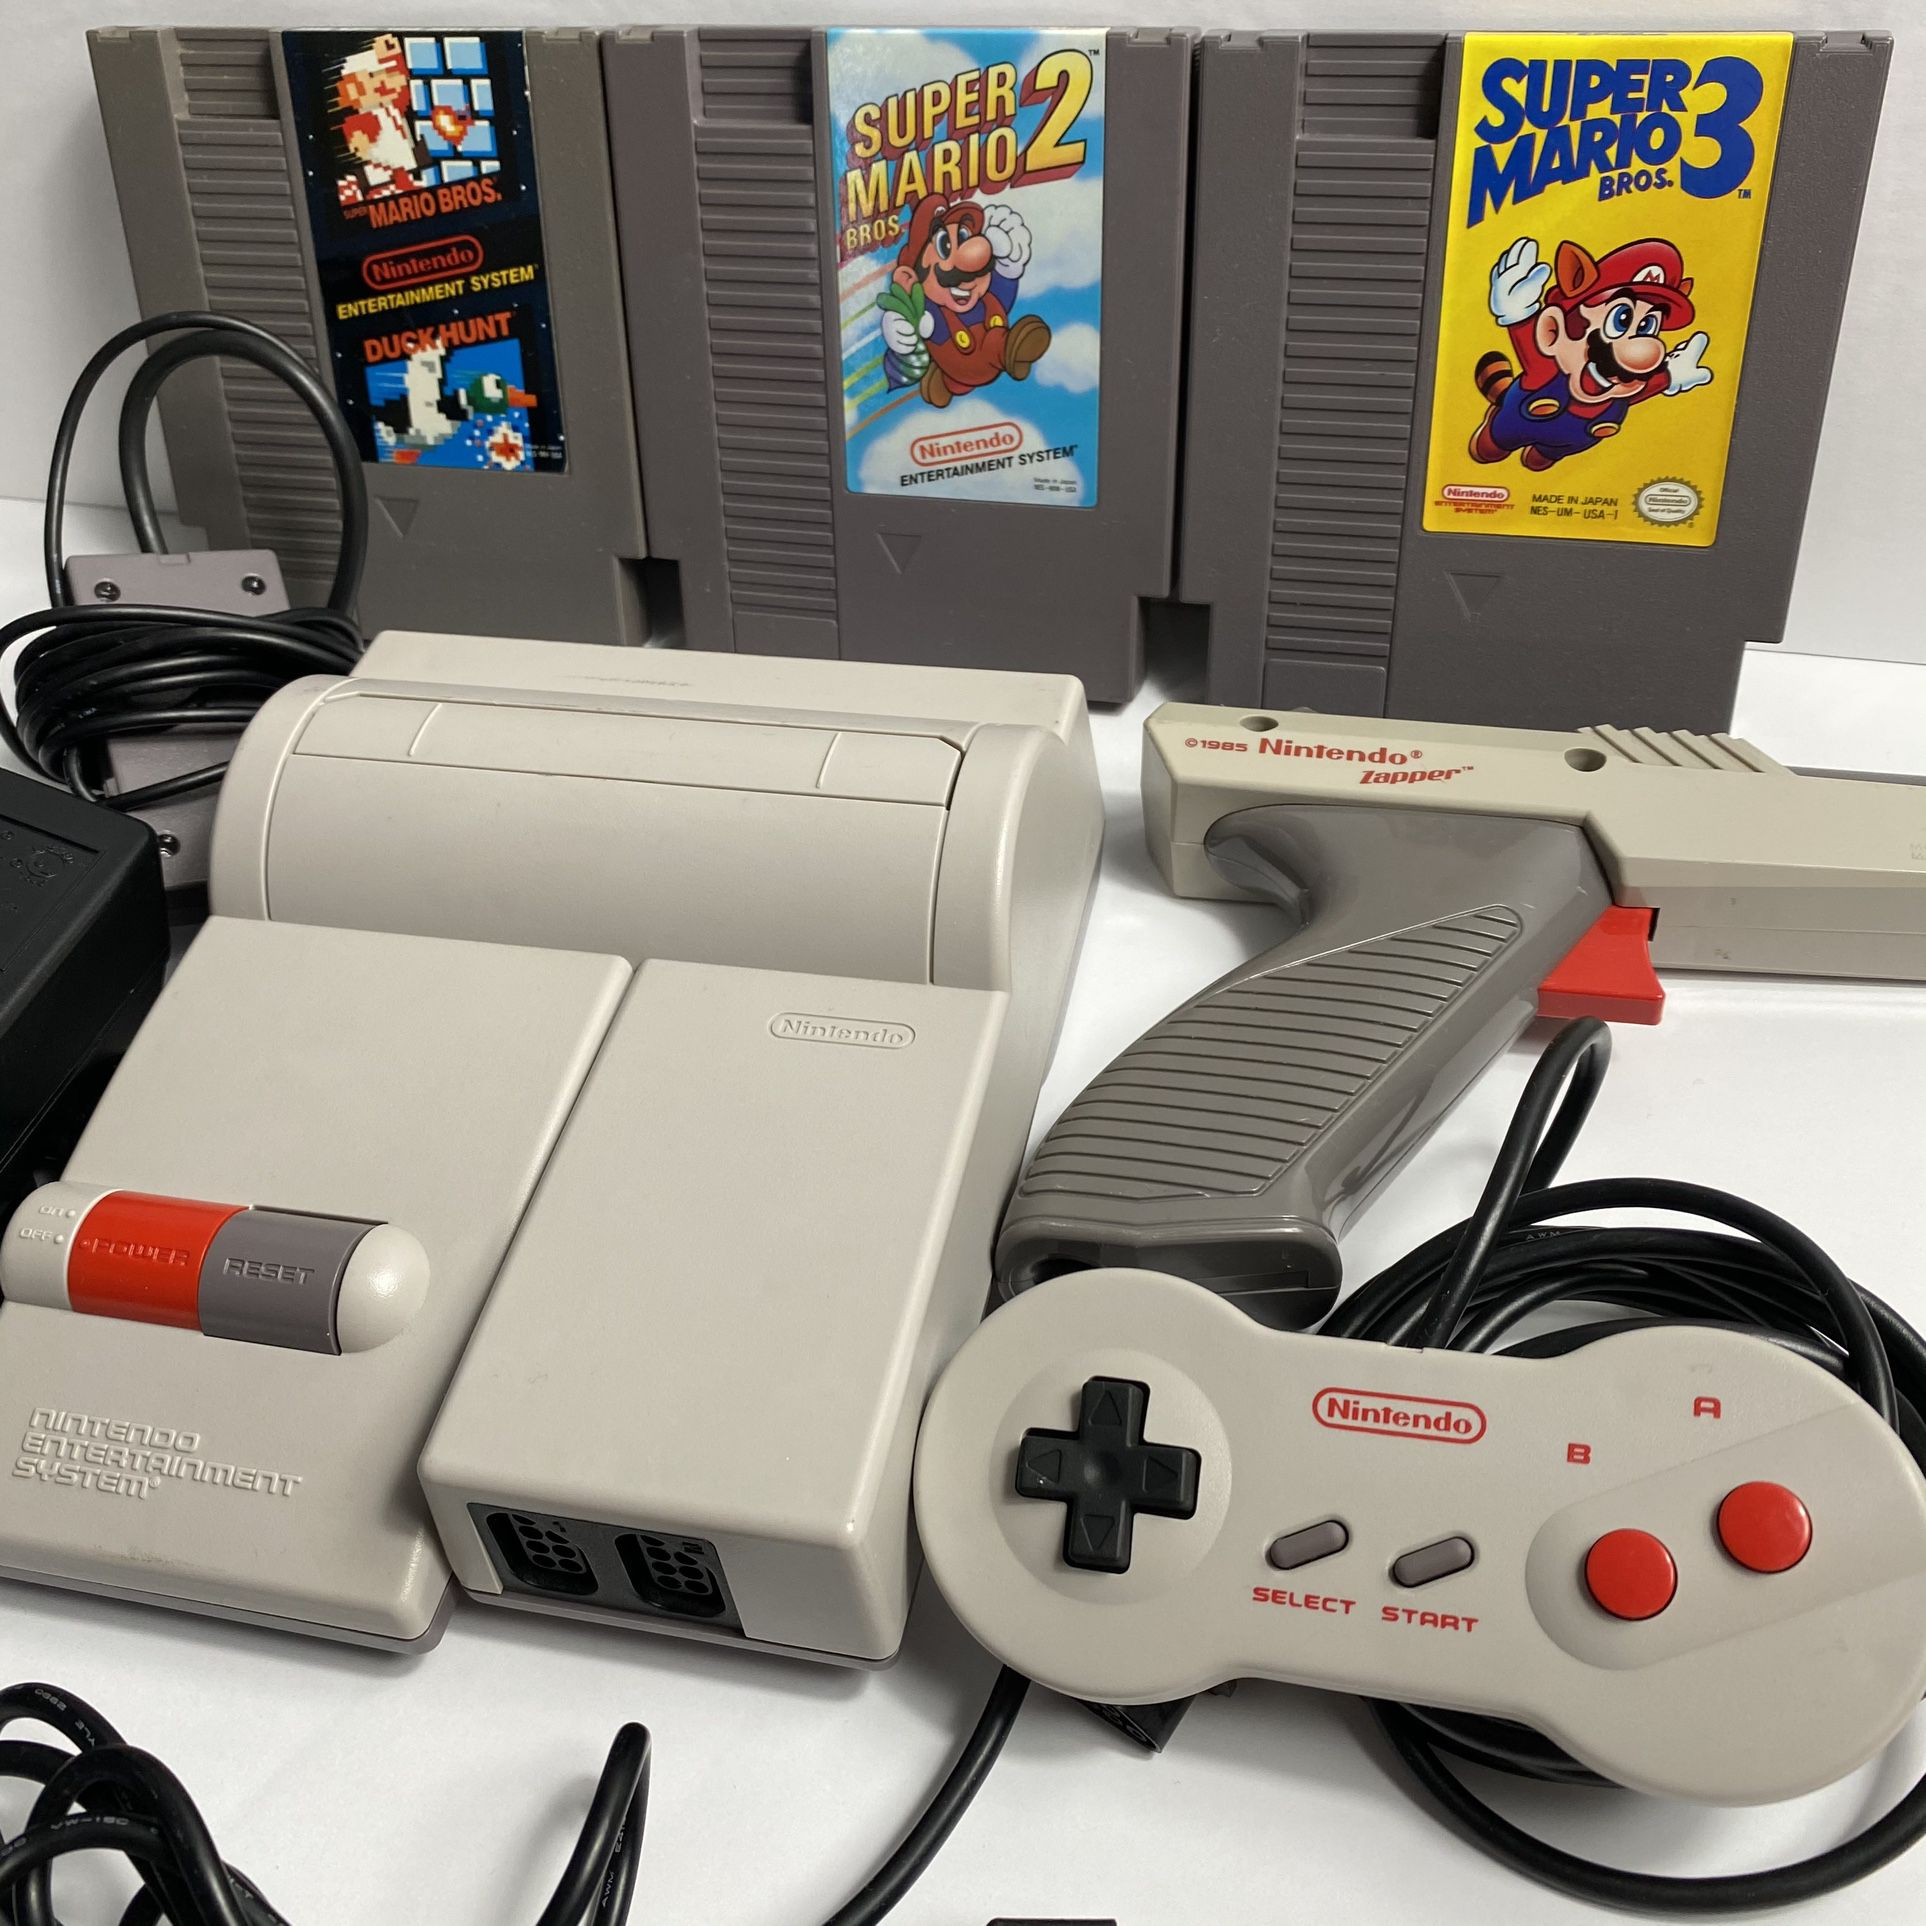 Nes Top loader bundle - Games controller and Zapper included